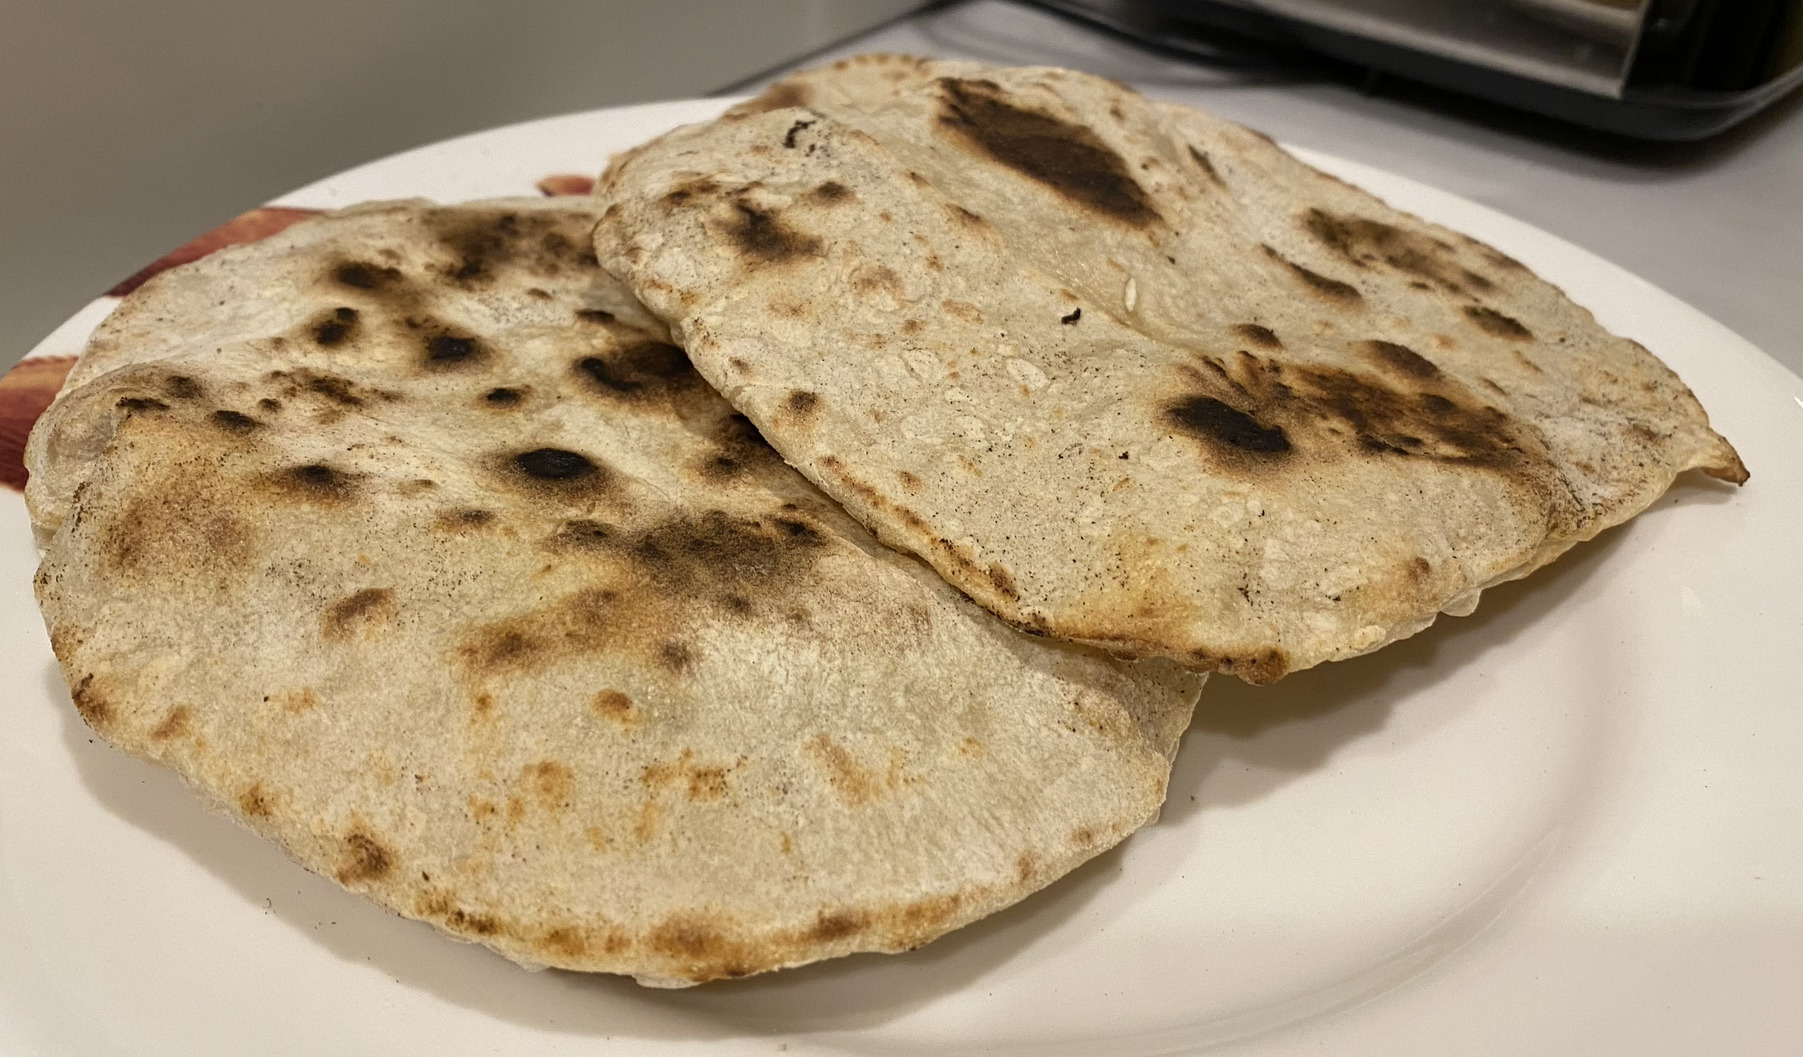 Two pitta breads with charred bits, slightly puffed up, on a plate